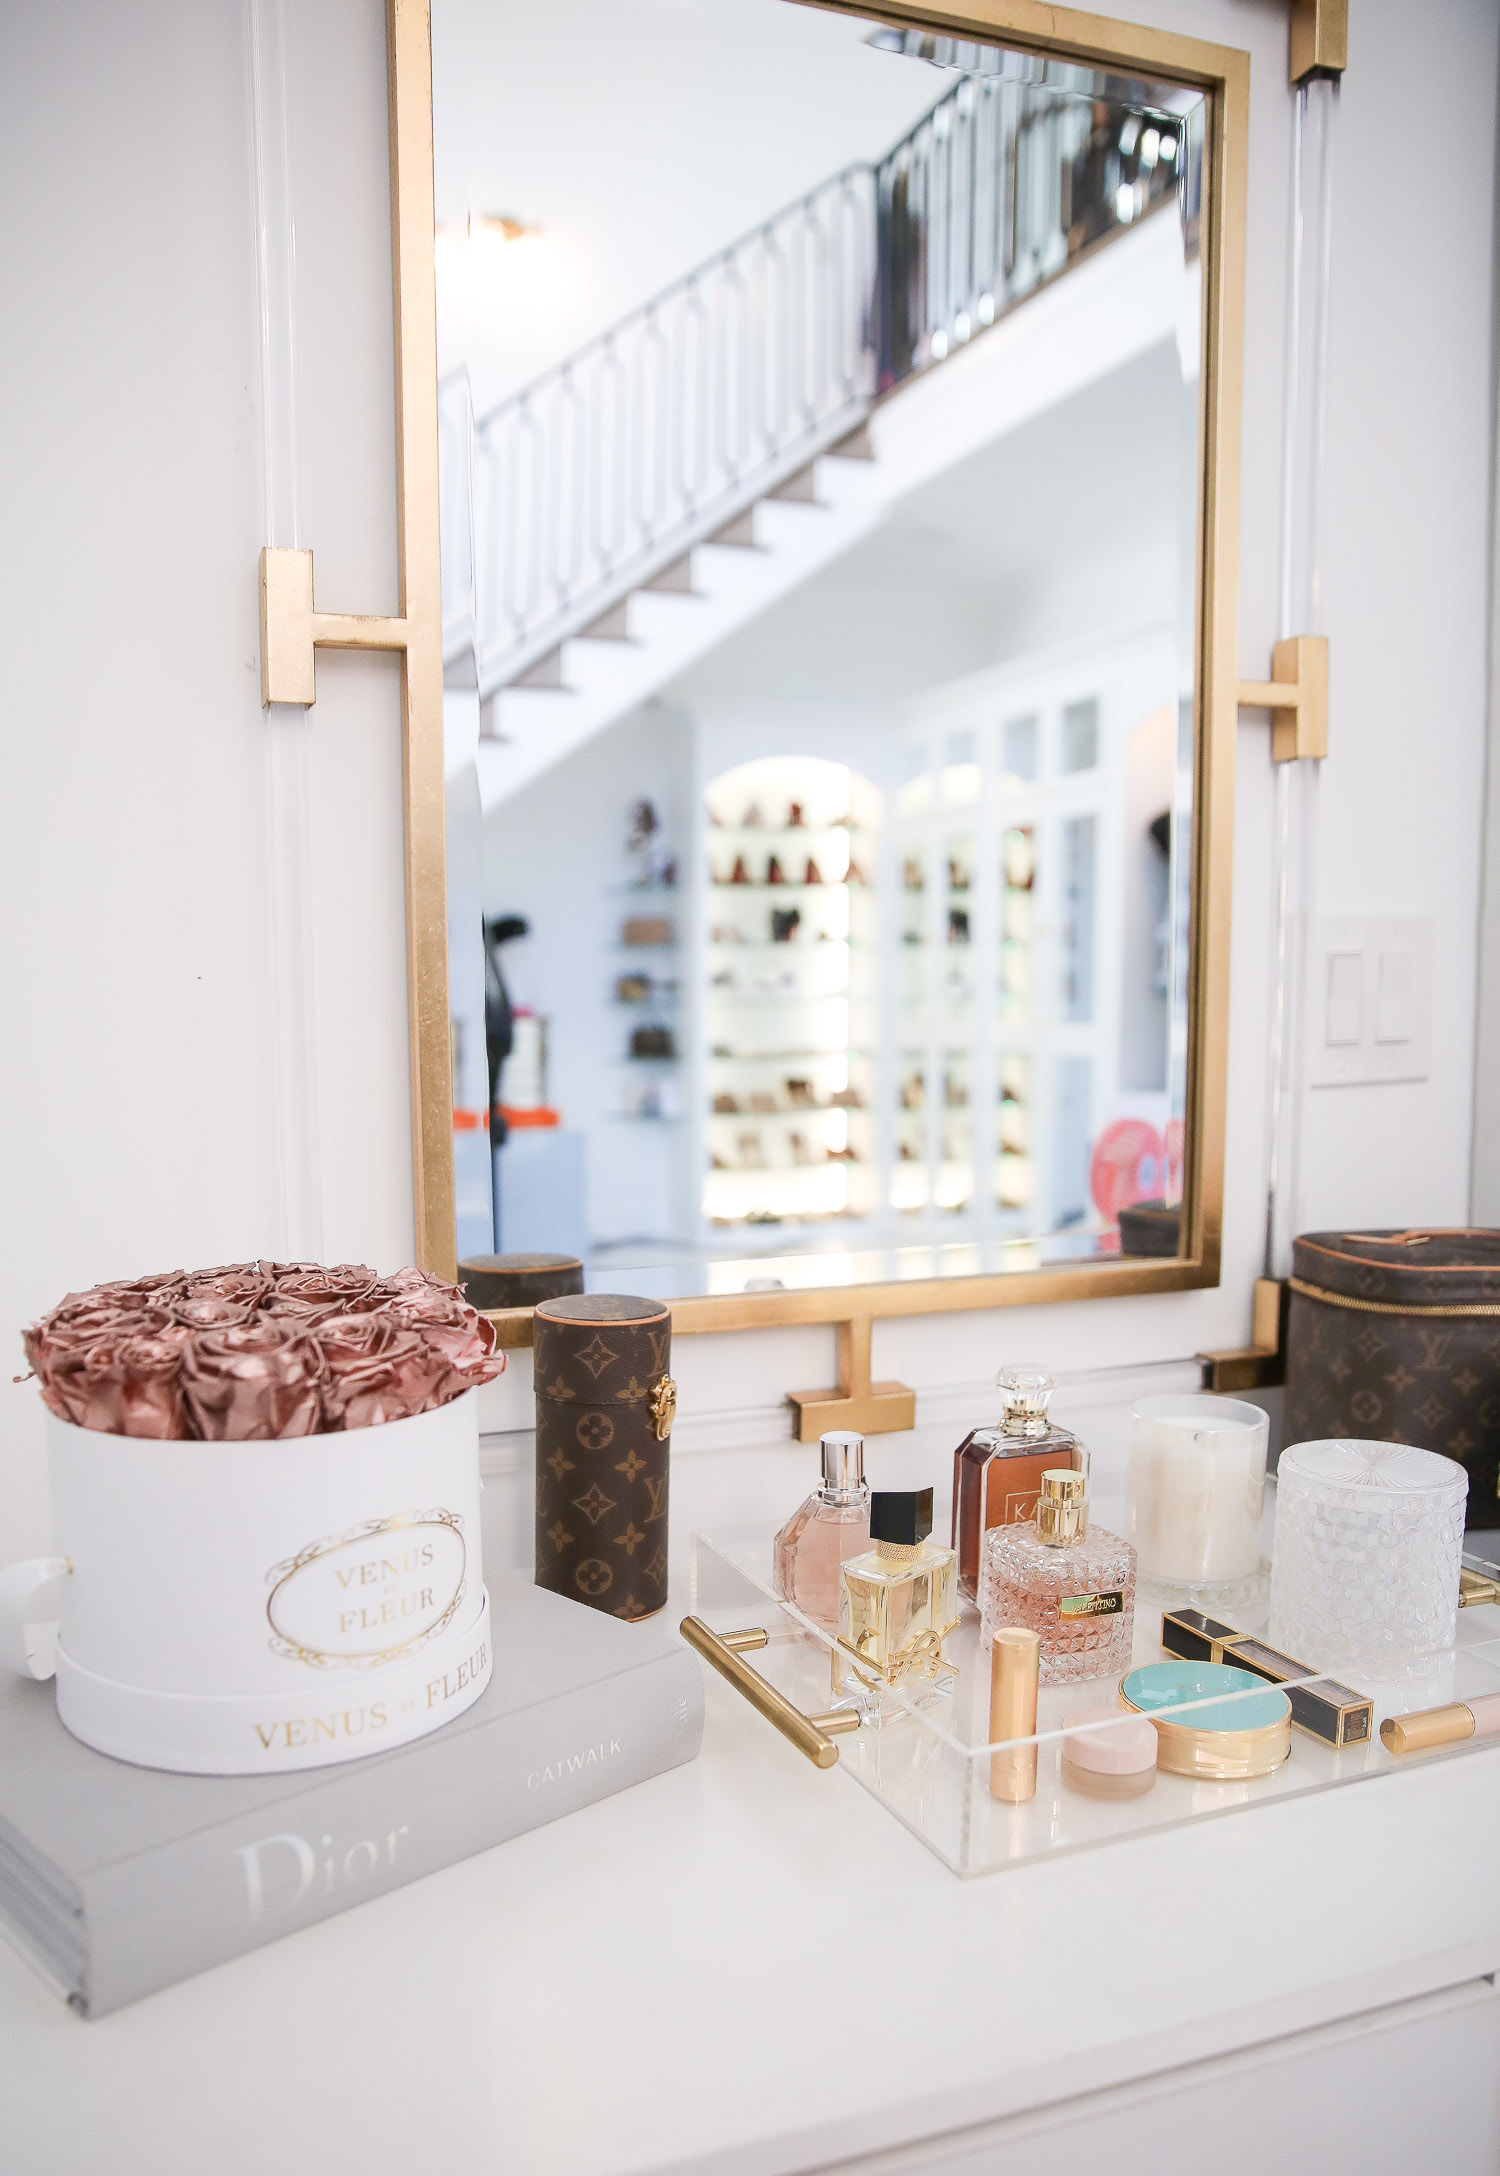 amazon must haves summer 2020, amazon home decor blog post, amazon luxury must haves, two story closet pinterest, emily gemma, closet organization | Amazon Favorites by popular US life and style blog, The Sweetest Thing: image of a gold frame mirror, Dior book, and acrylic tray containing makeup and various perfumes.